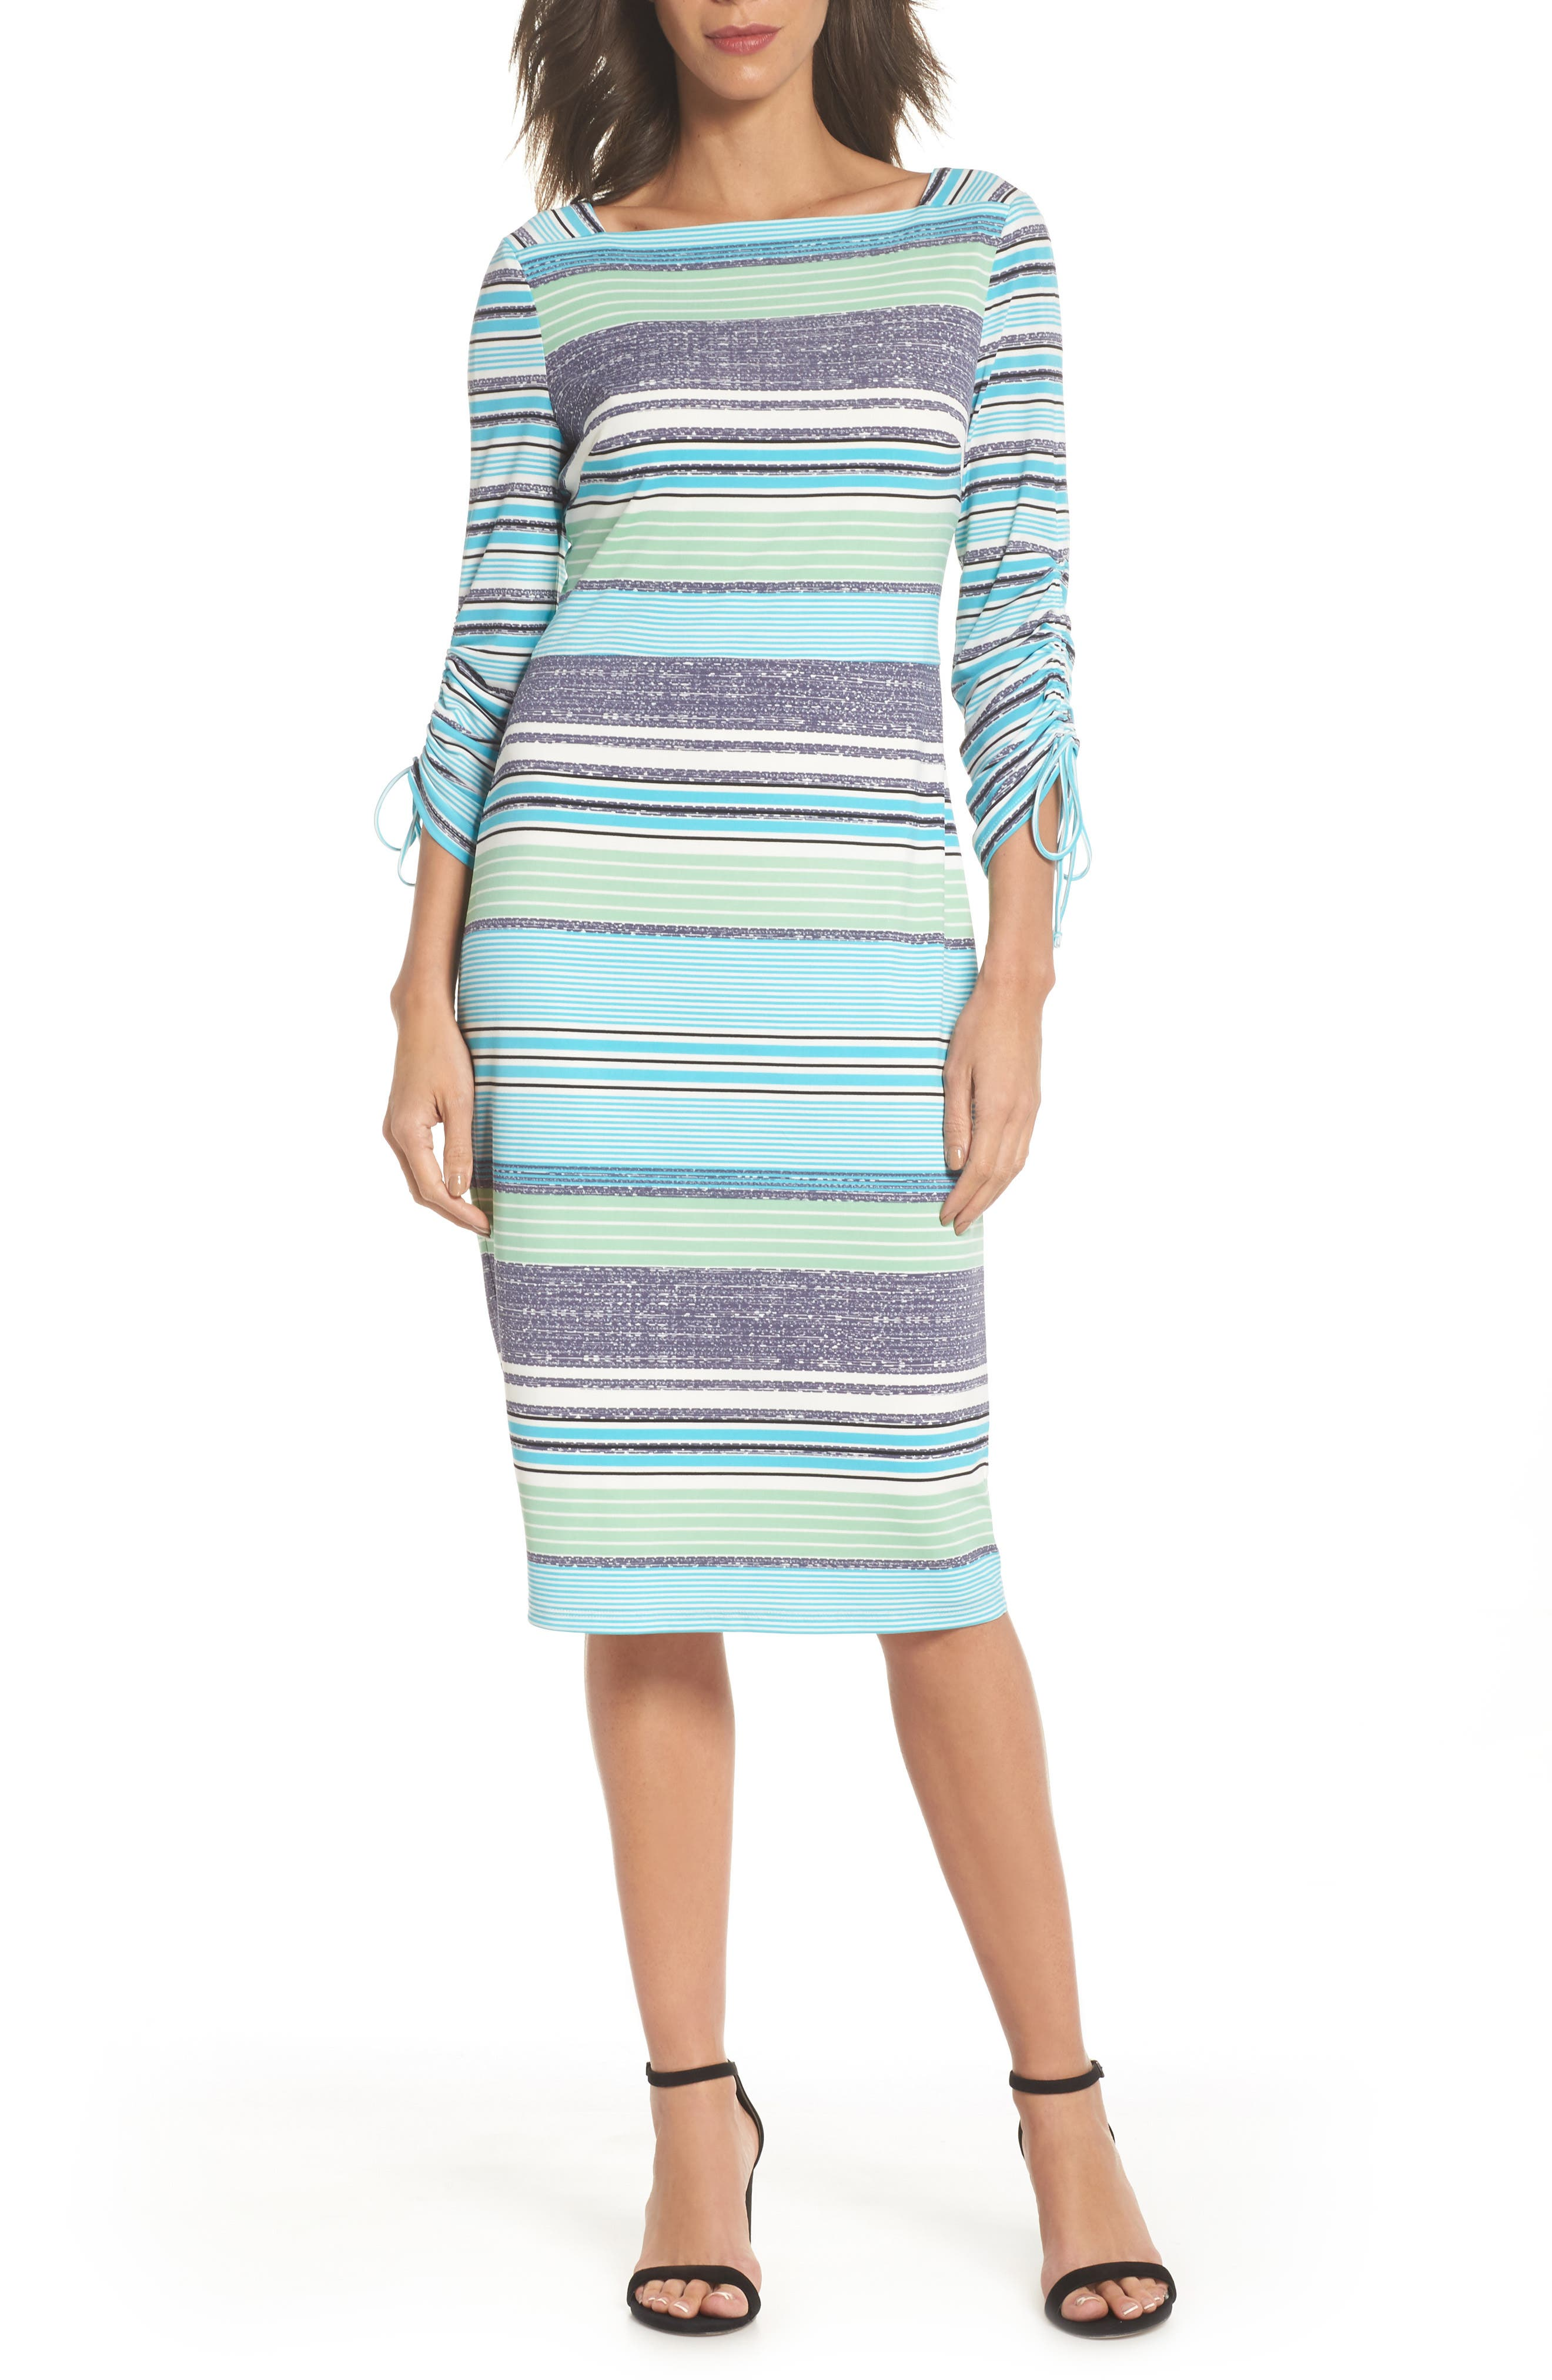 Ruched Sleeve Sheath Dress,                             Main thumbnail 1, color,                             WHITE/ AQUA